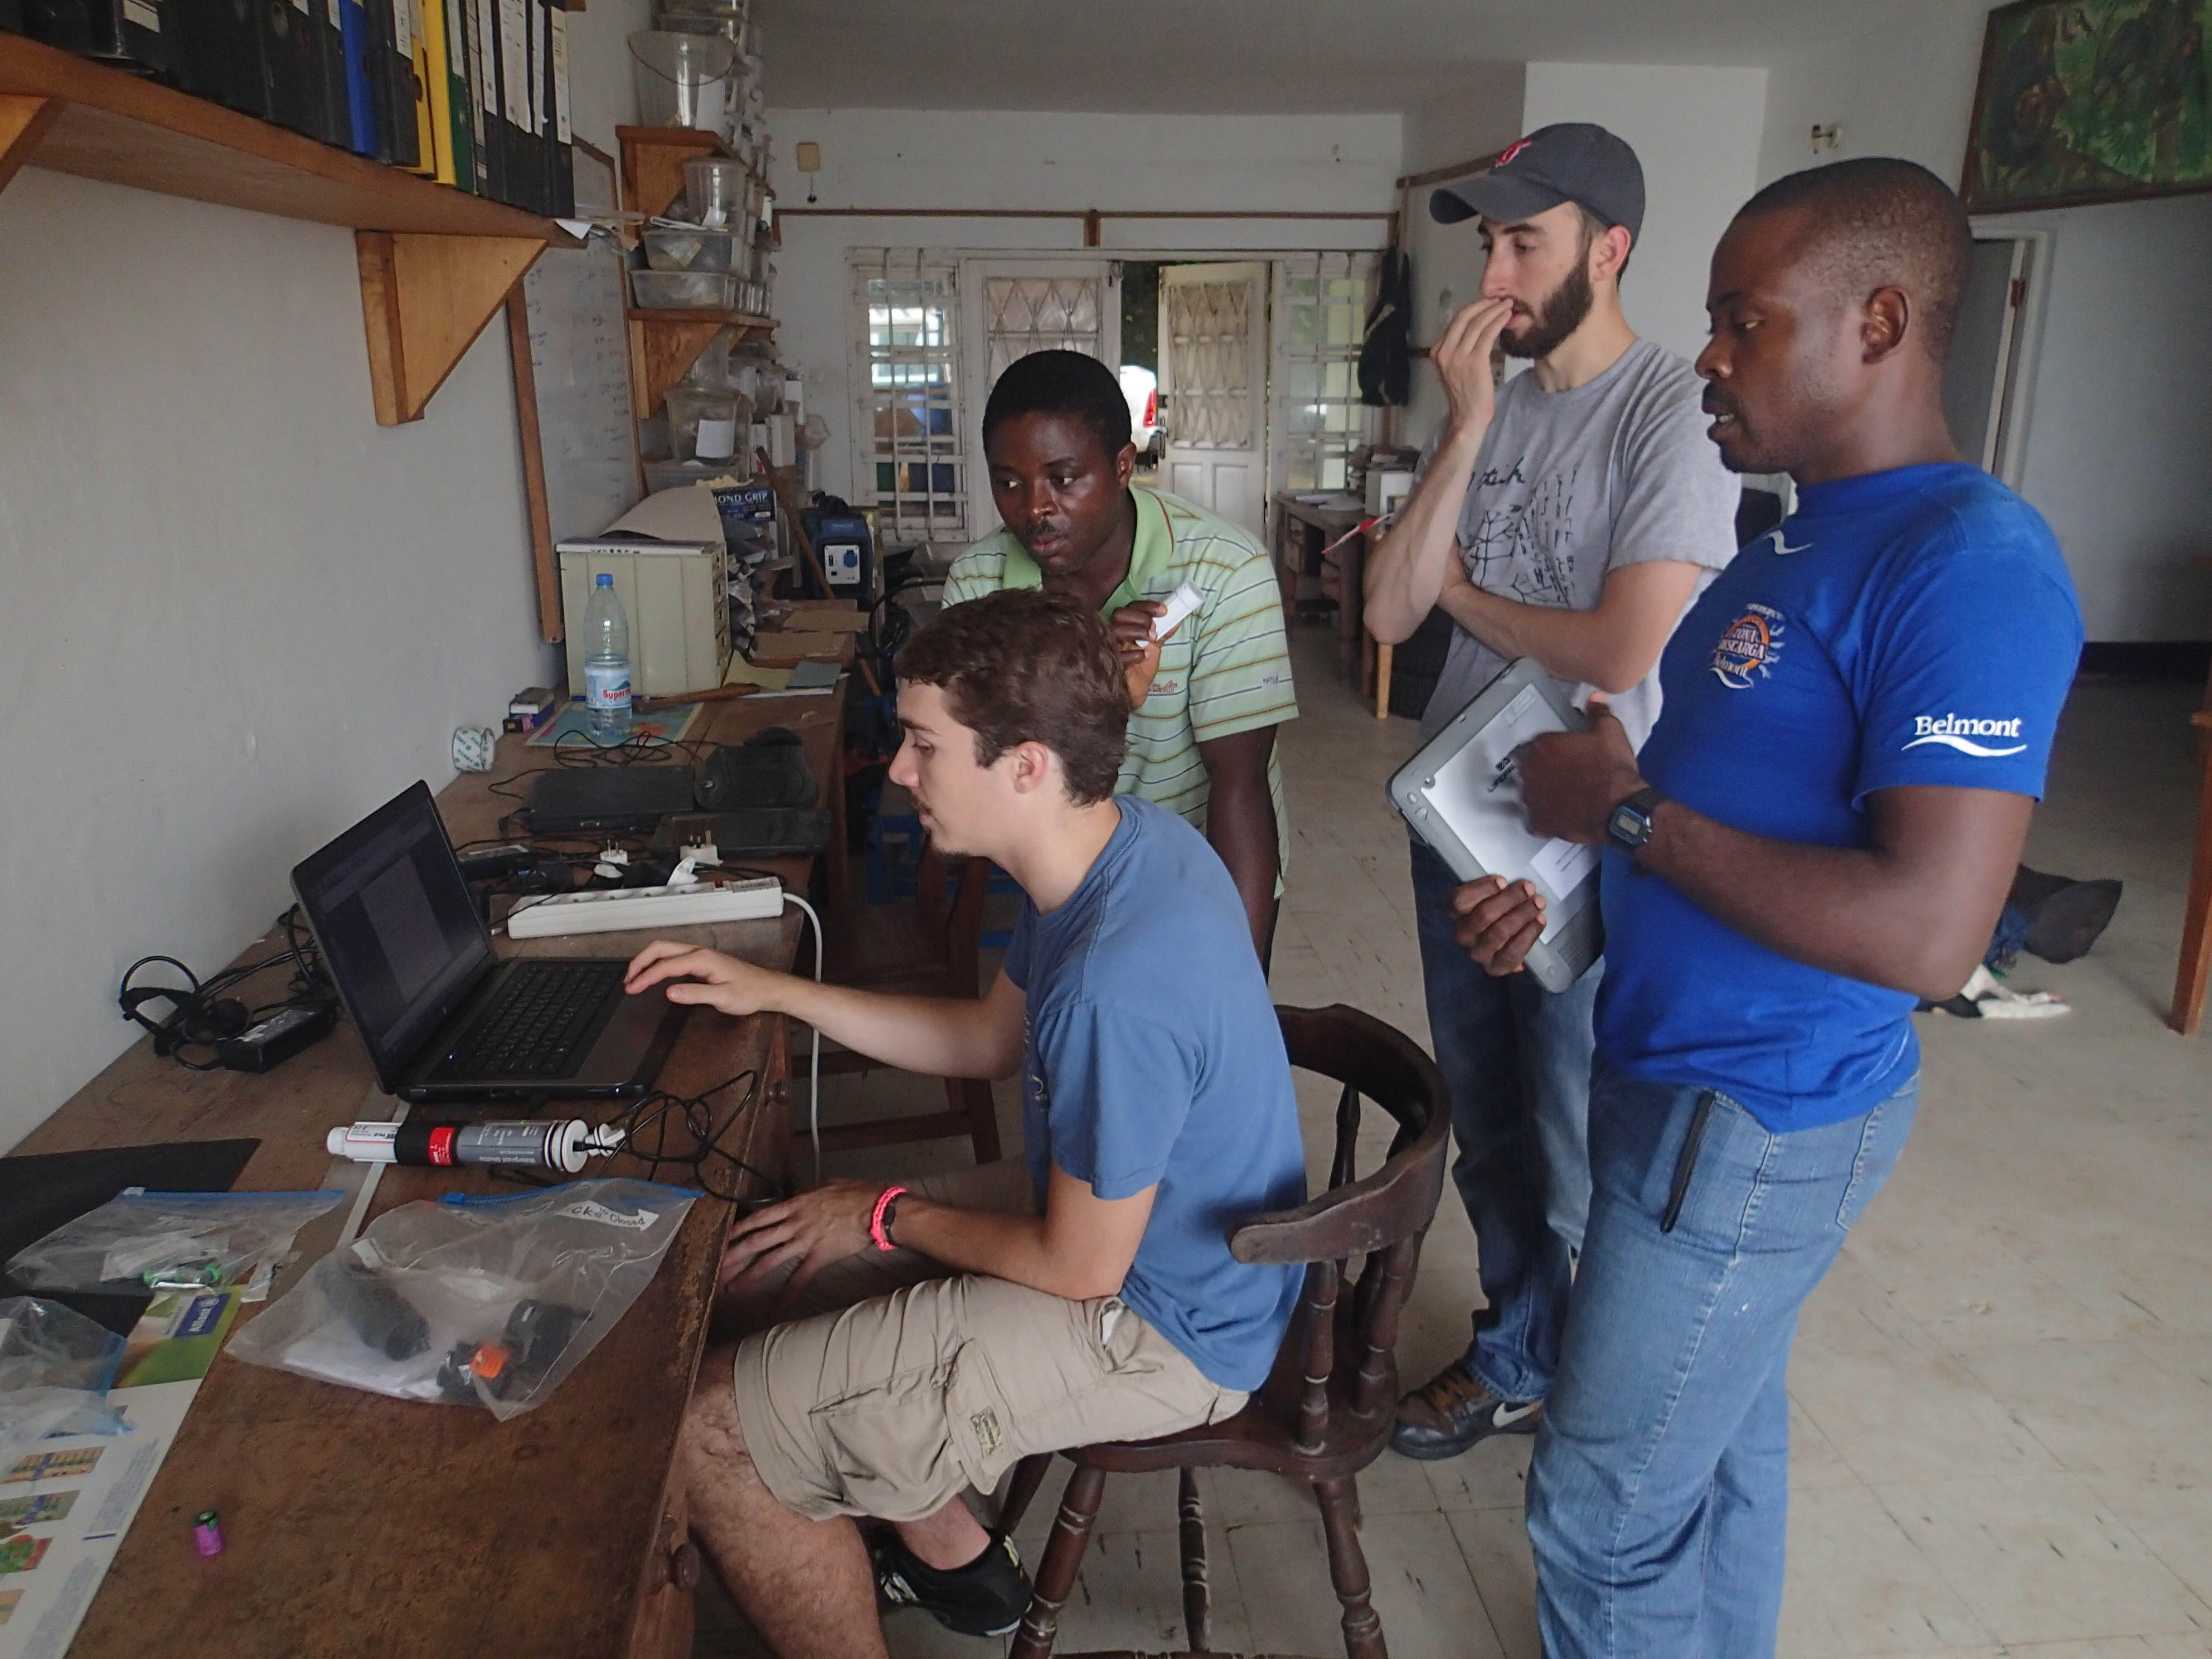 Drexel University researchers Paul Sesink Clee (seated) and Matthew Mitchell (standing, center) analyzing climate data from a field site with researchers from Ebo Forest Research Project. Credit Mary Katherine Gonder